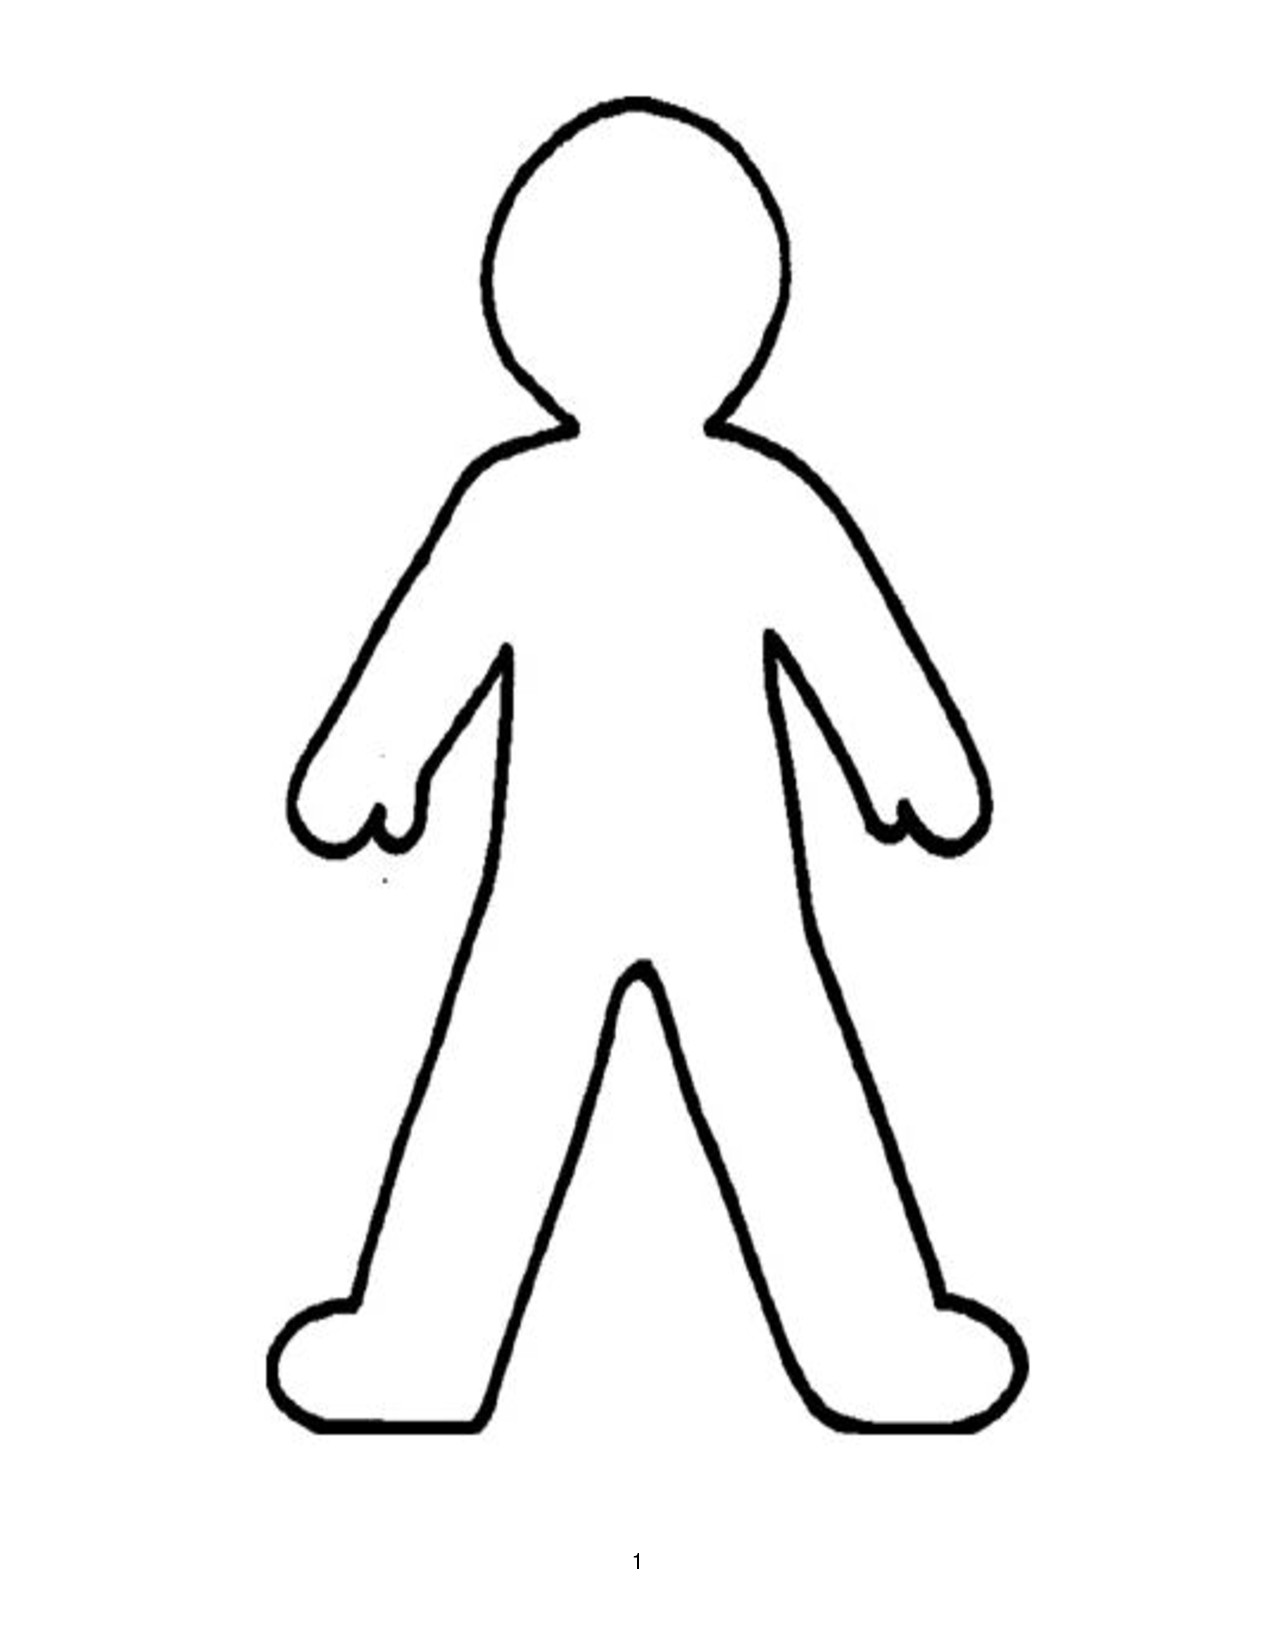 kid outline coloring page human body coloring pages to download and print for free page outline kid coloring